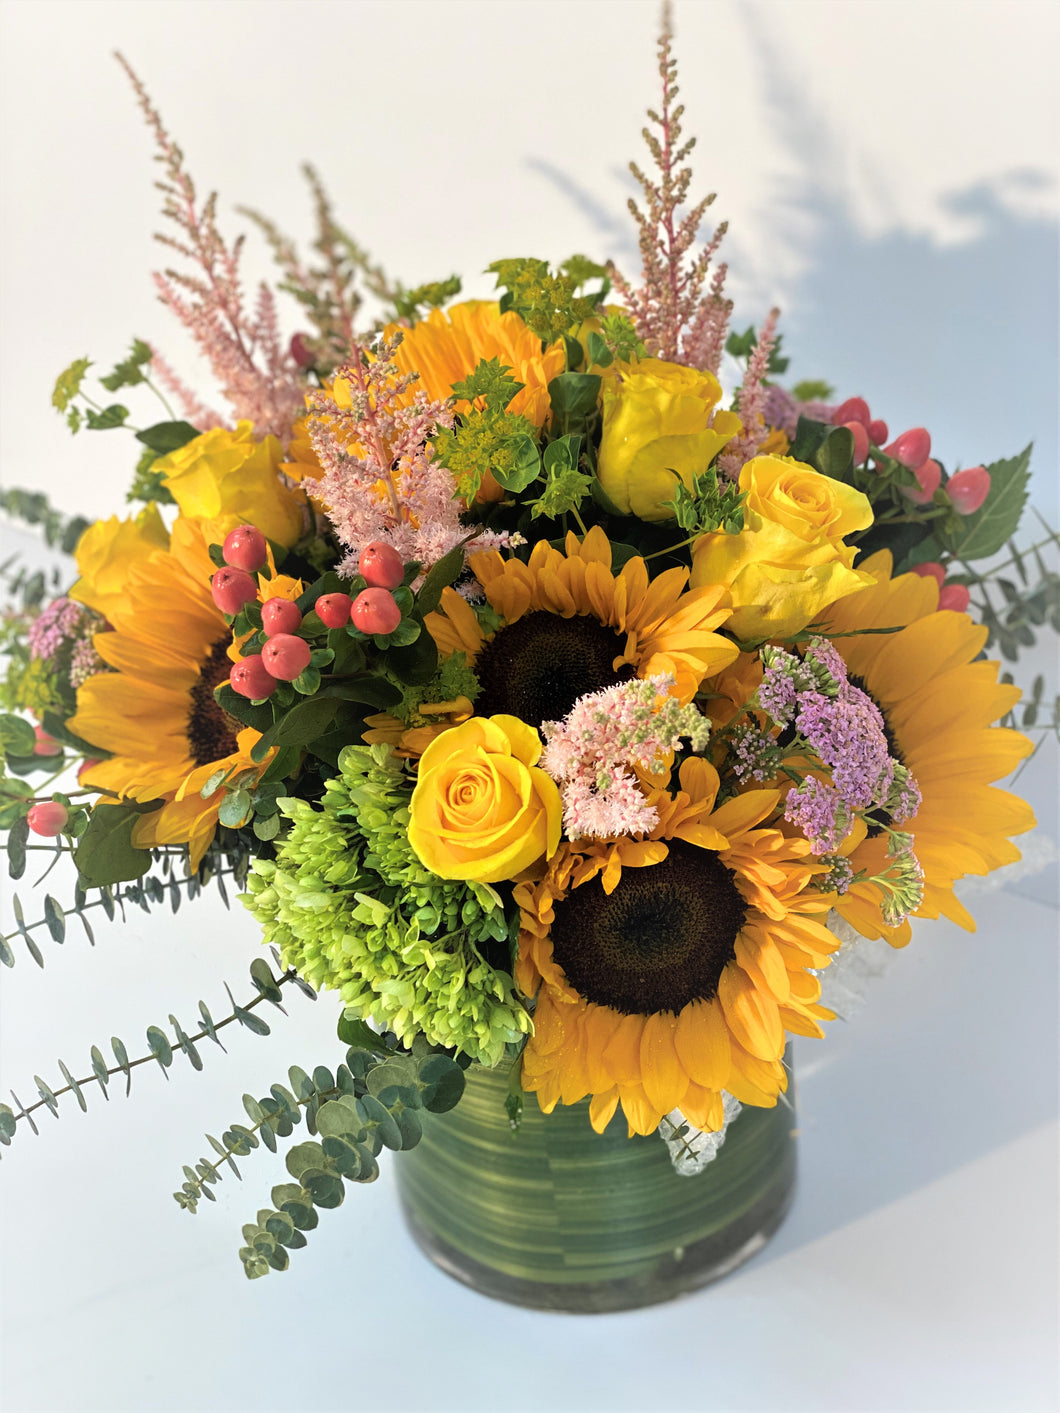 F11 - Sunflower Sunshine Vase Arrangement - Flowerplustoronto